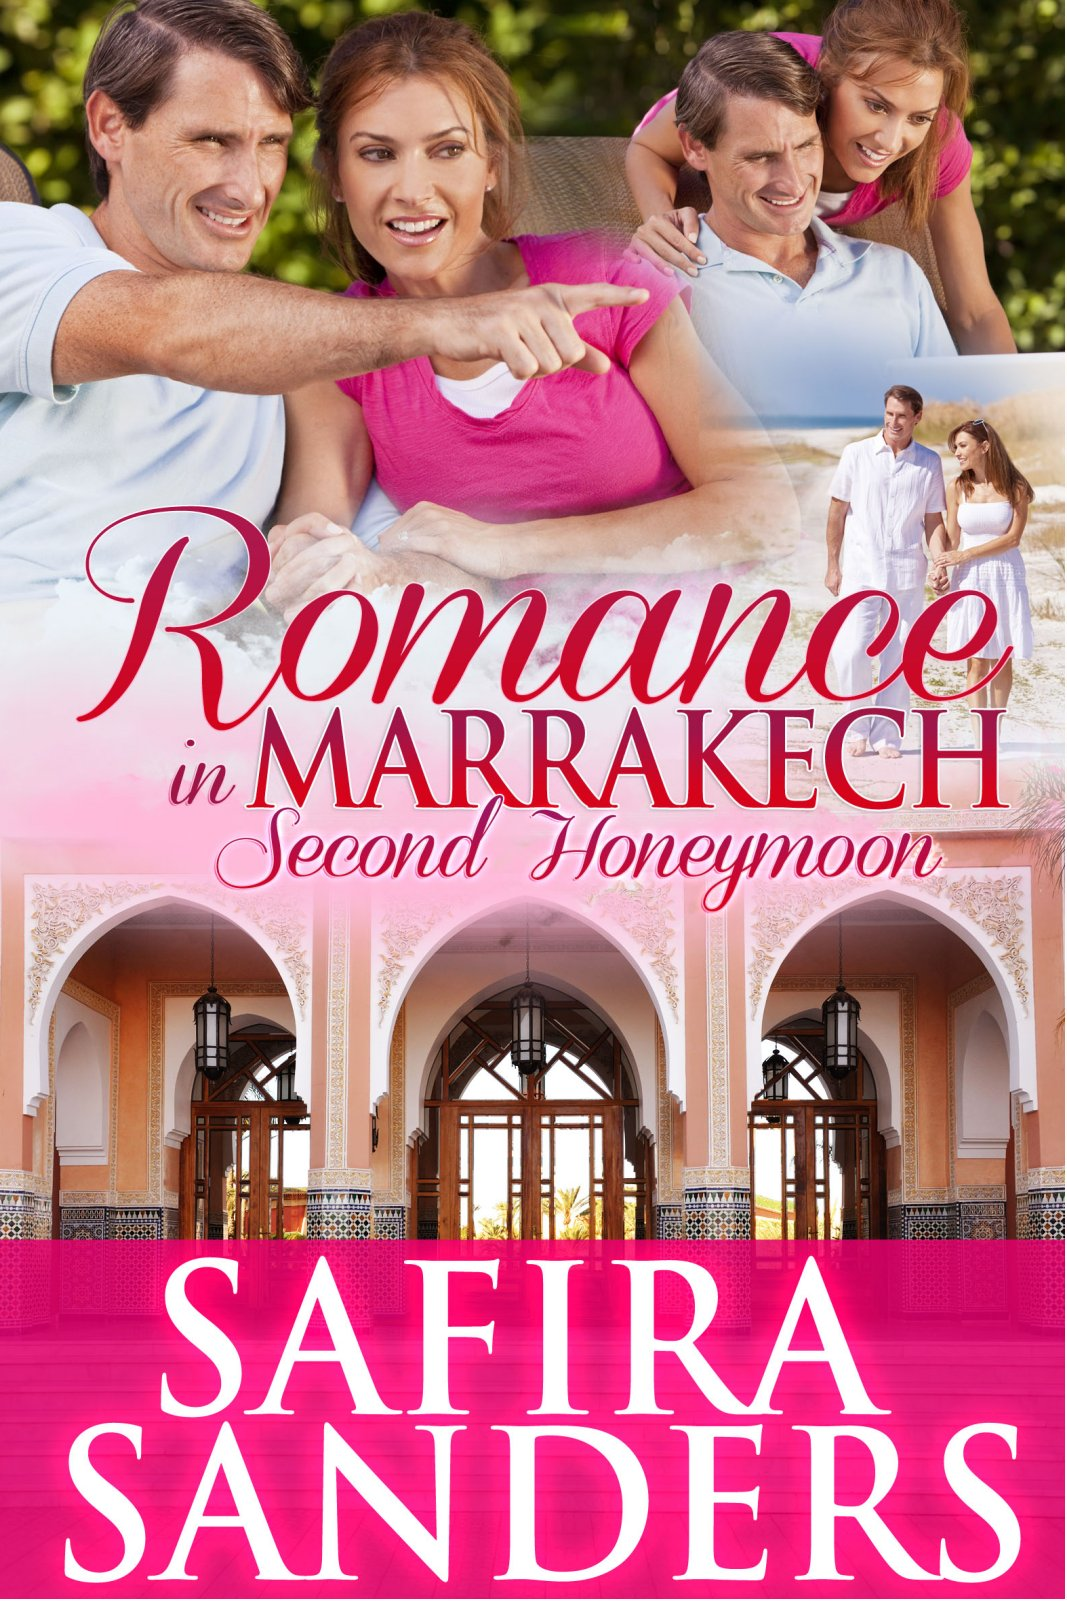 Romance In Marrakech - Second Honeymoon by Safira Sanders